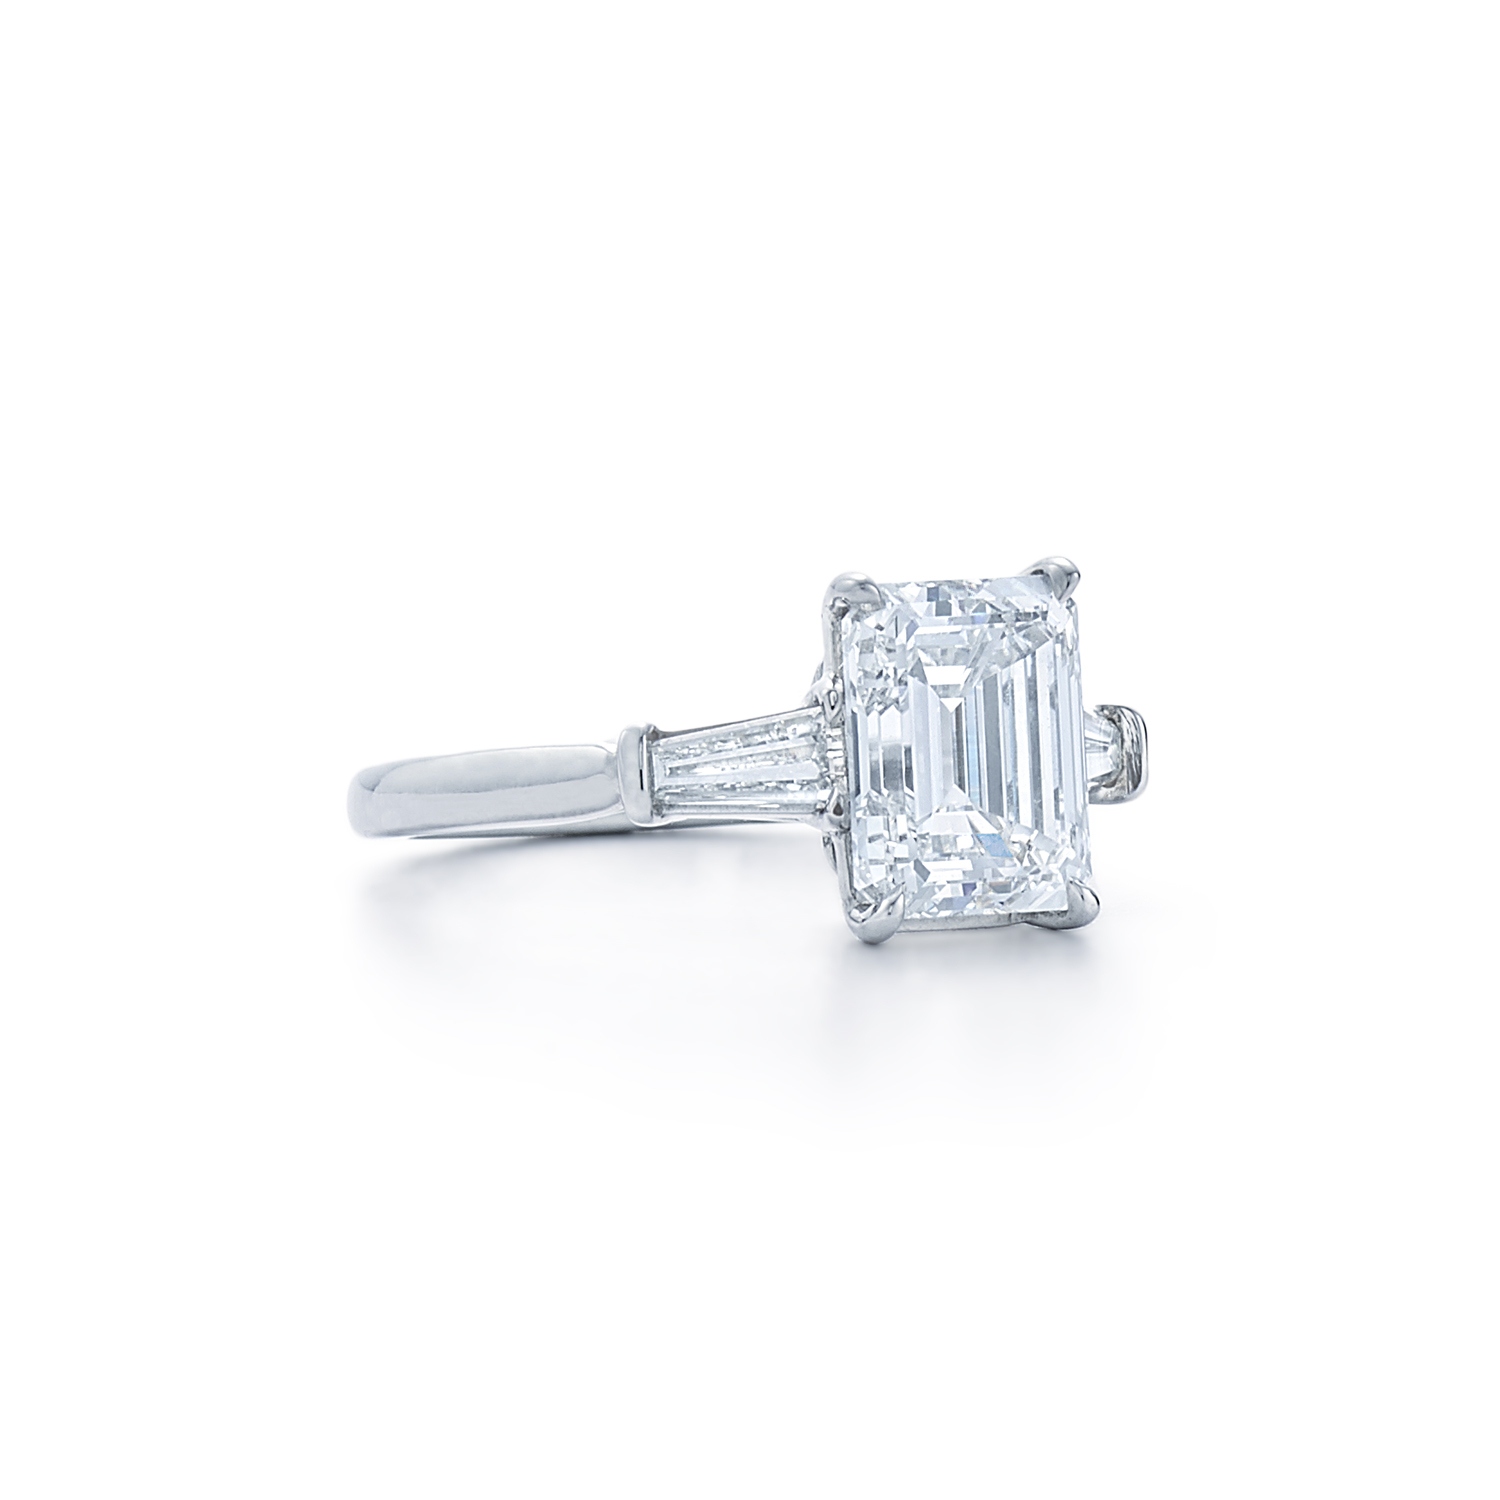 Emerald Cut Diamond Engagement Ring | Dk Gems With Cushion Cut Engagement Rings With Tapered Baguette Side Stones (View 18 of 25)